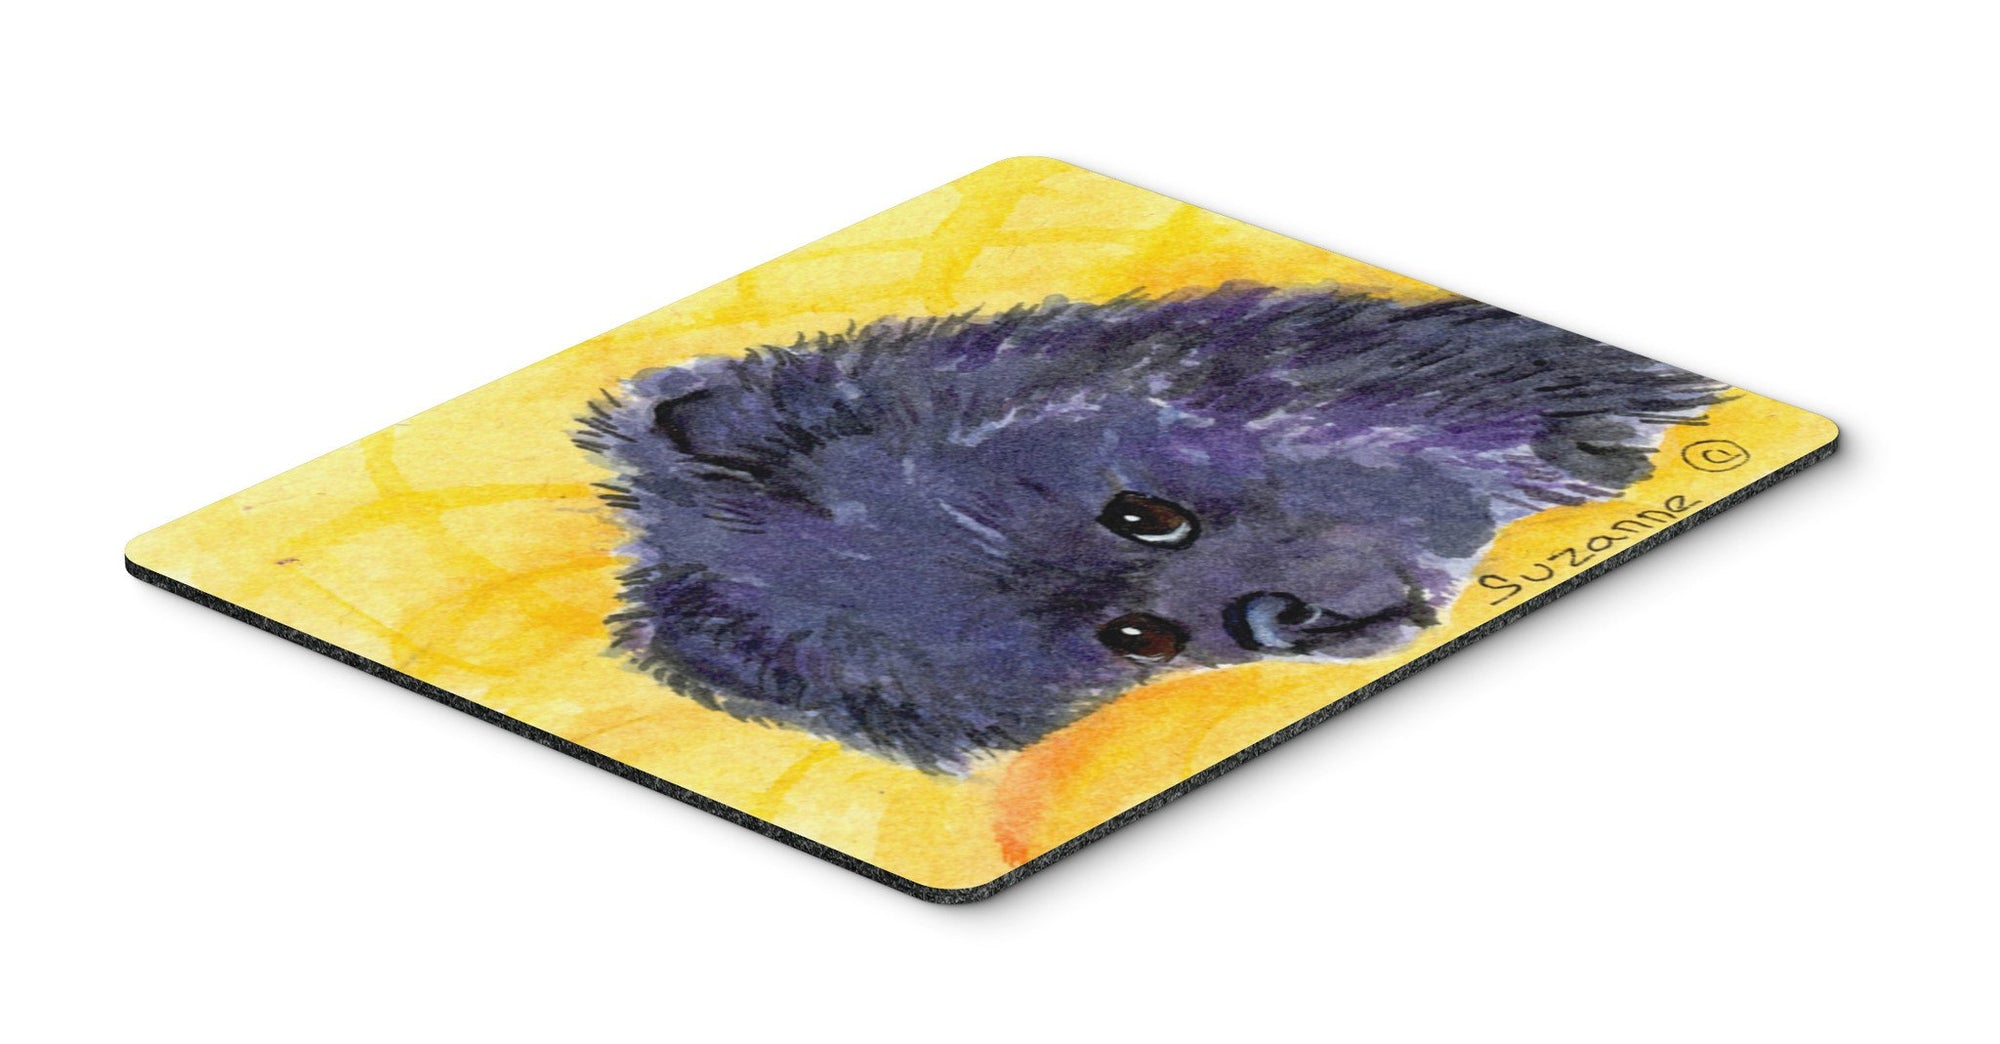 Pomeranian Mouse pad, hot pad, or trivet by Caroline's Treasures